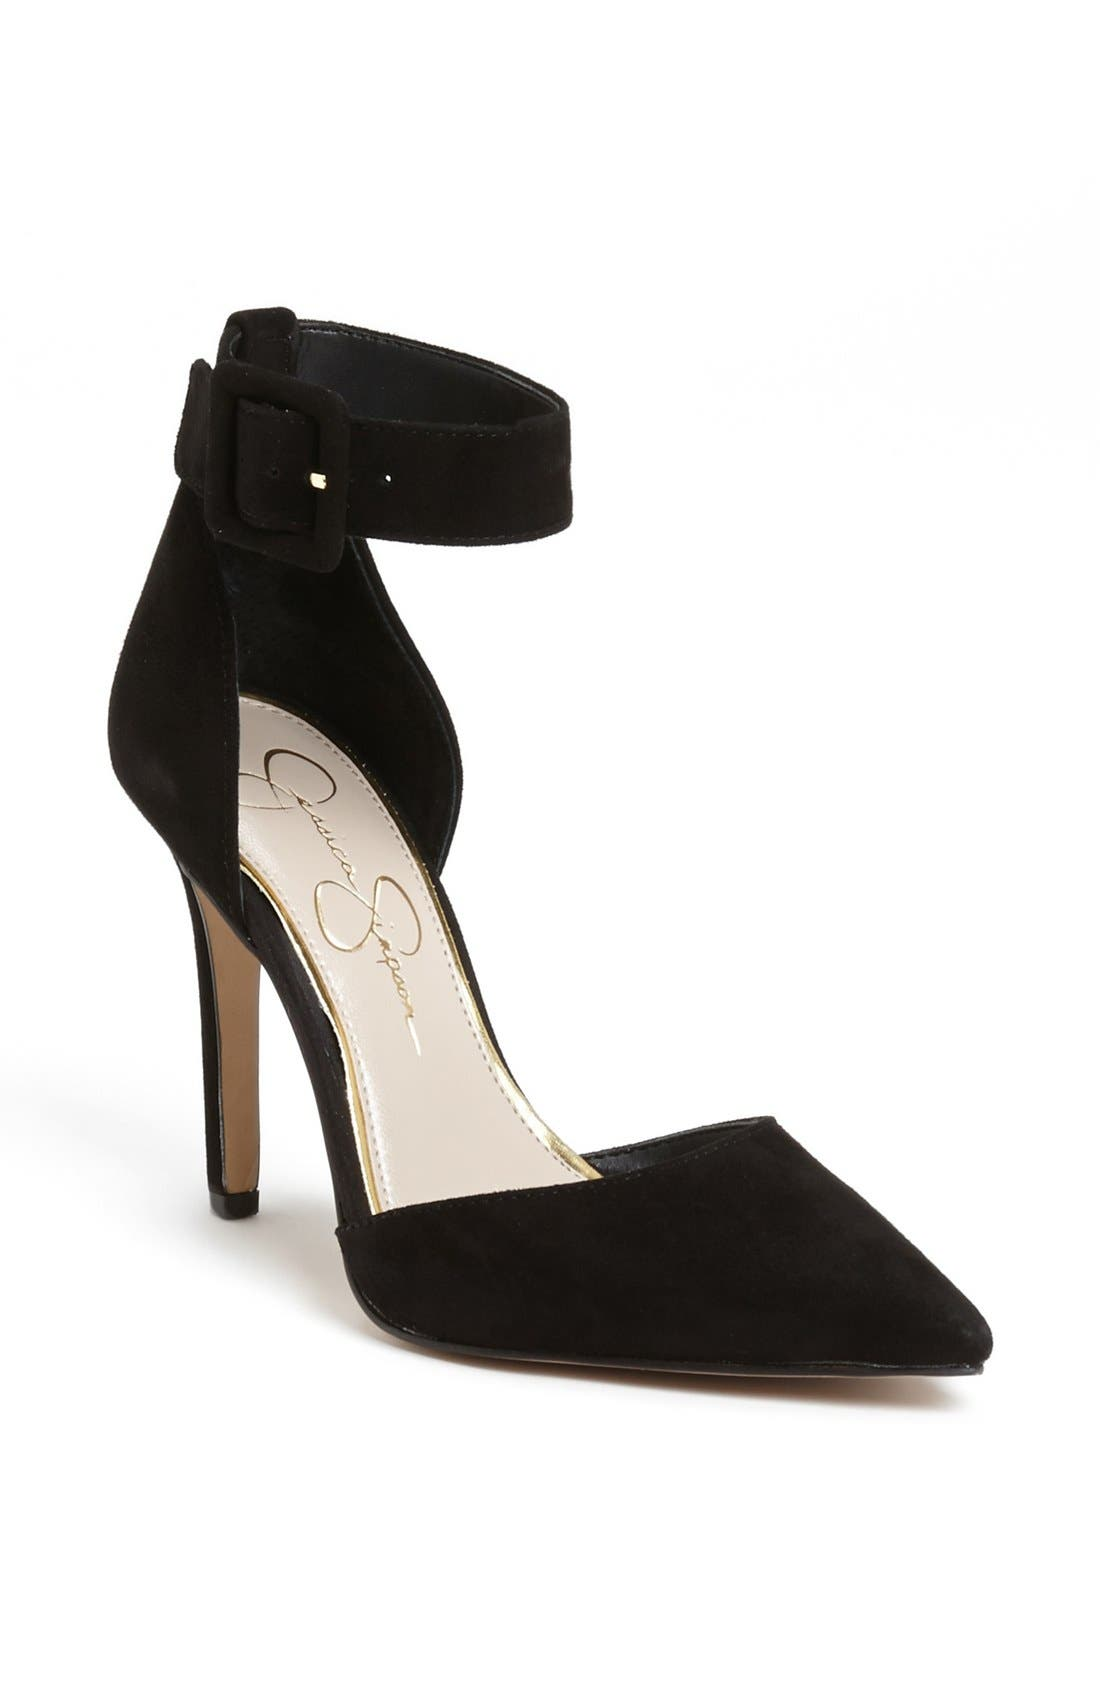 Alternate Image 1 Selected - Jessica Simpson 'Cayna' D'Orsay Ankle Strap Pump